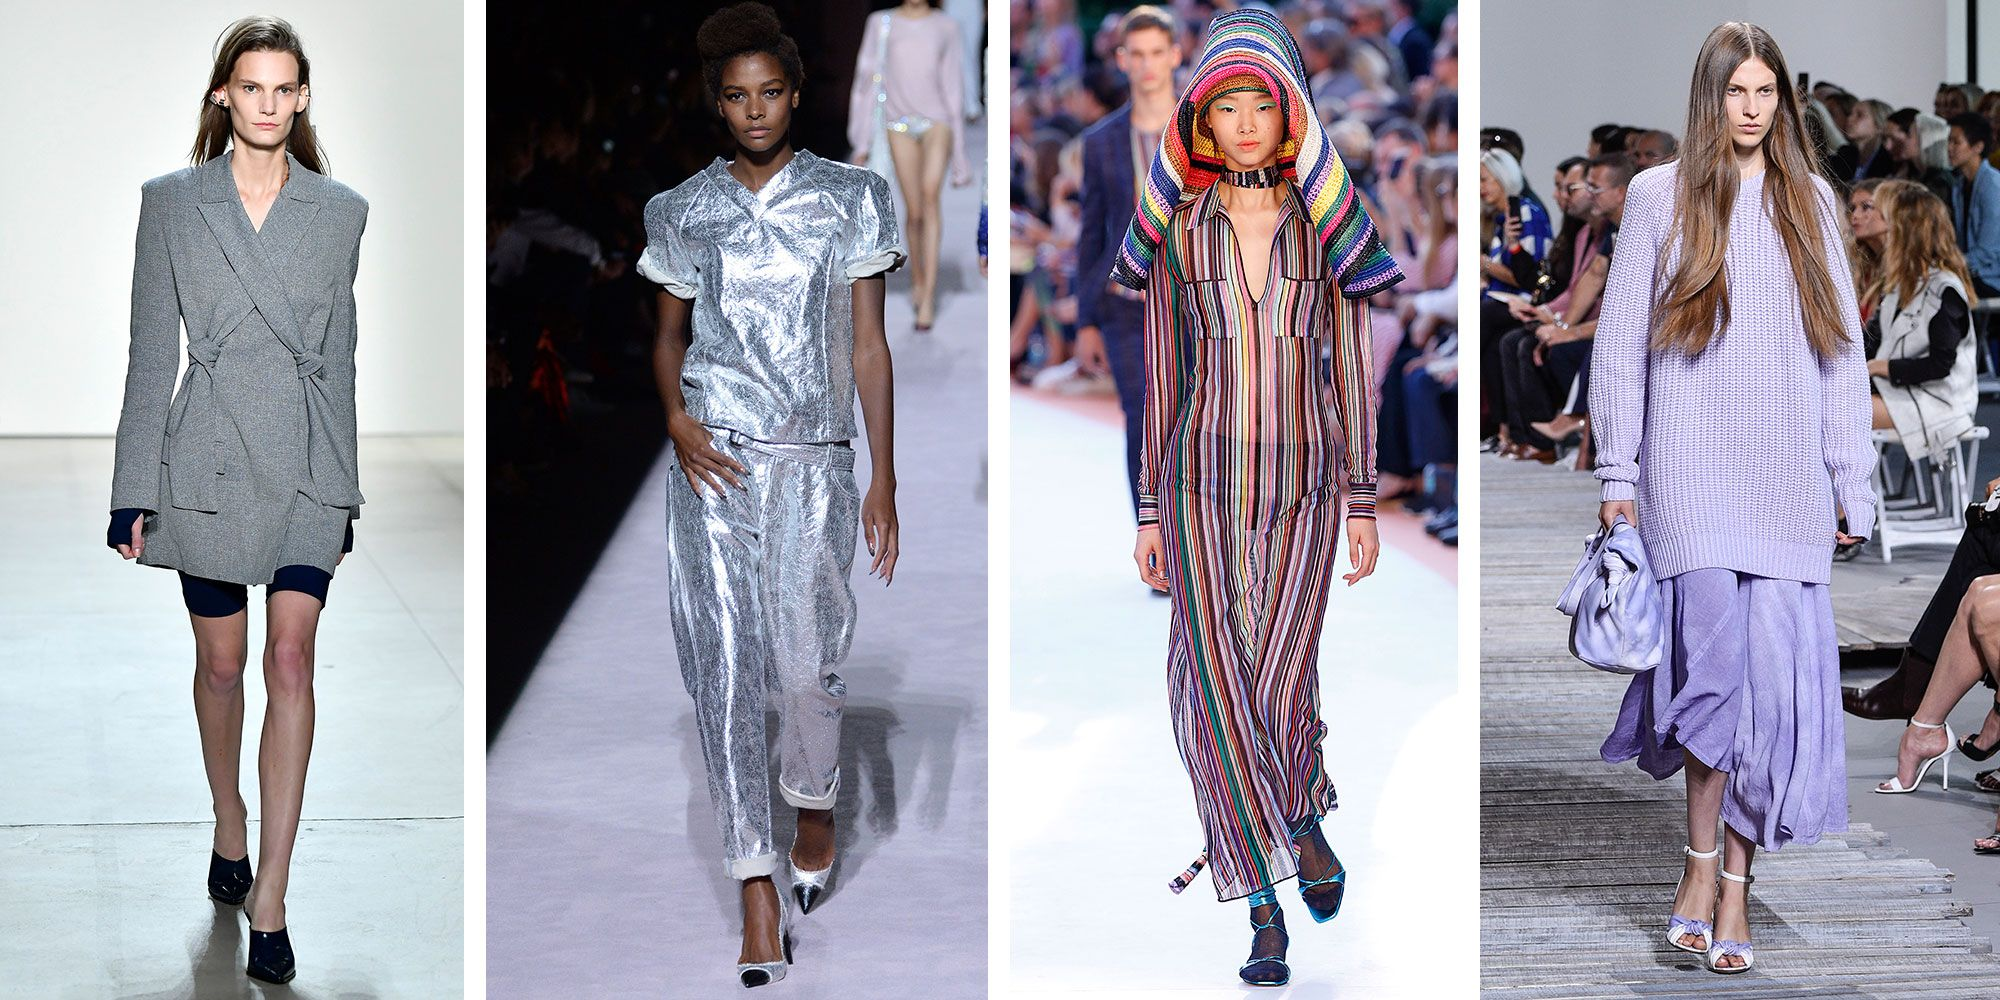 Spring summer 2018 fashion trends: the fashion trends you need to know